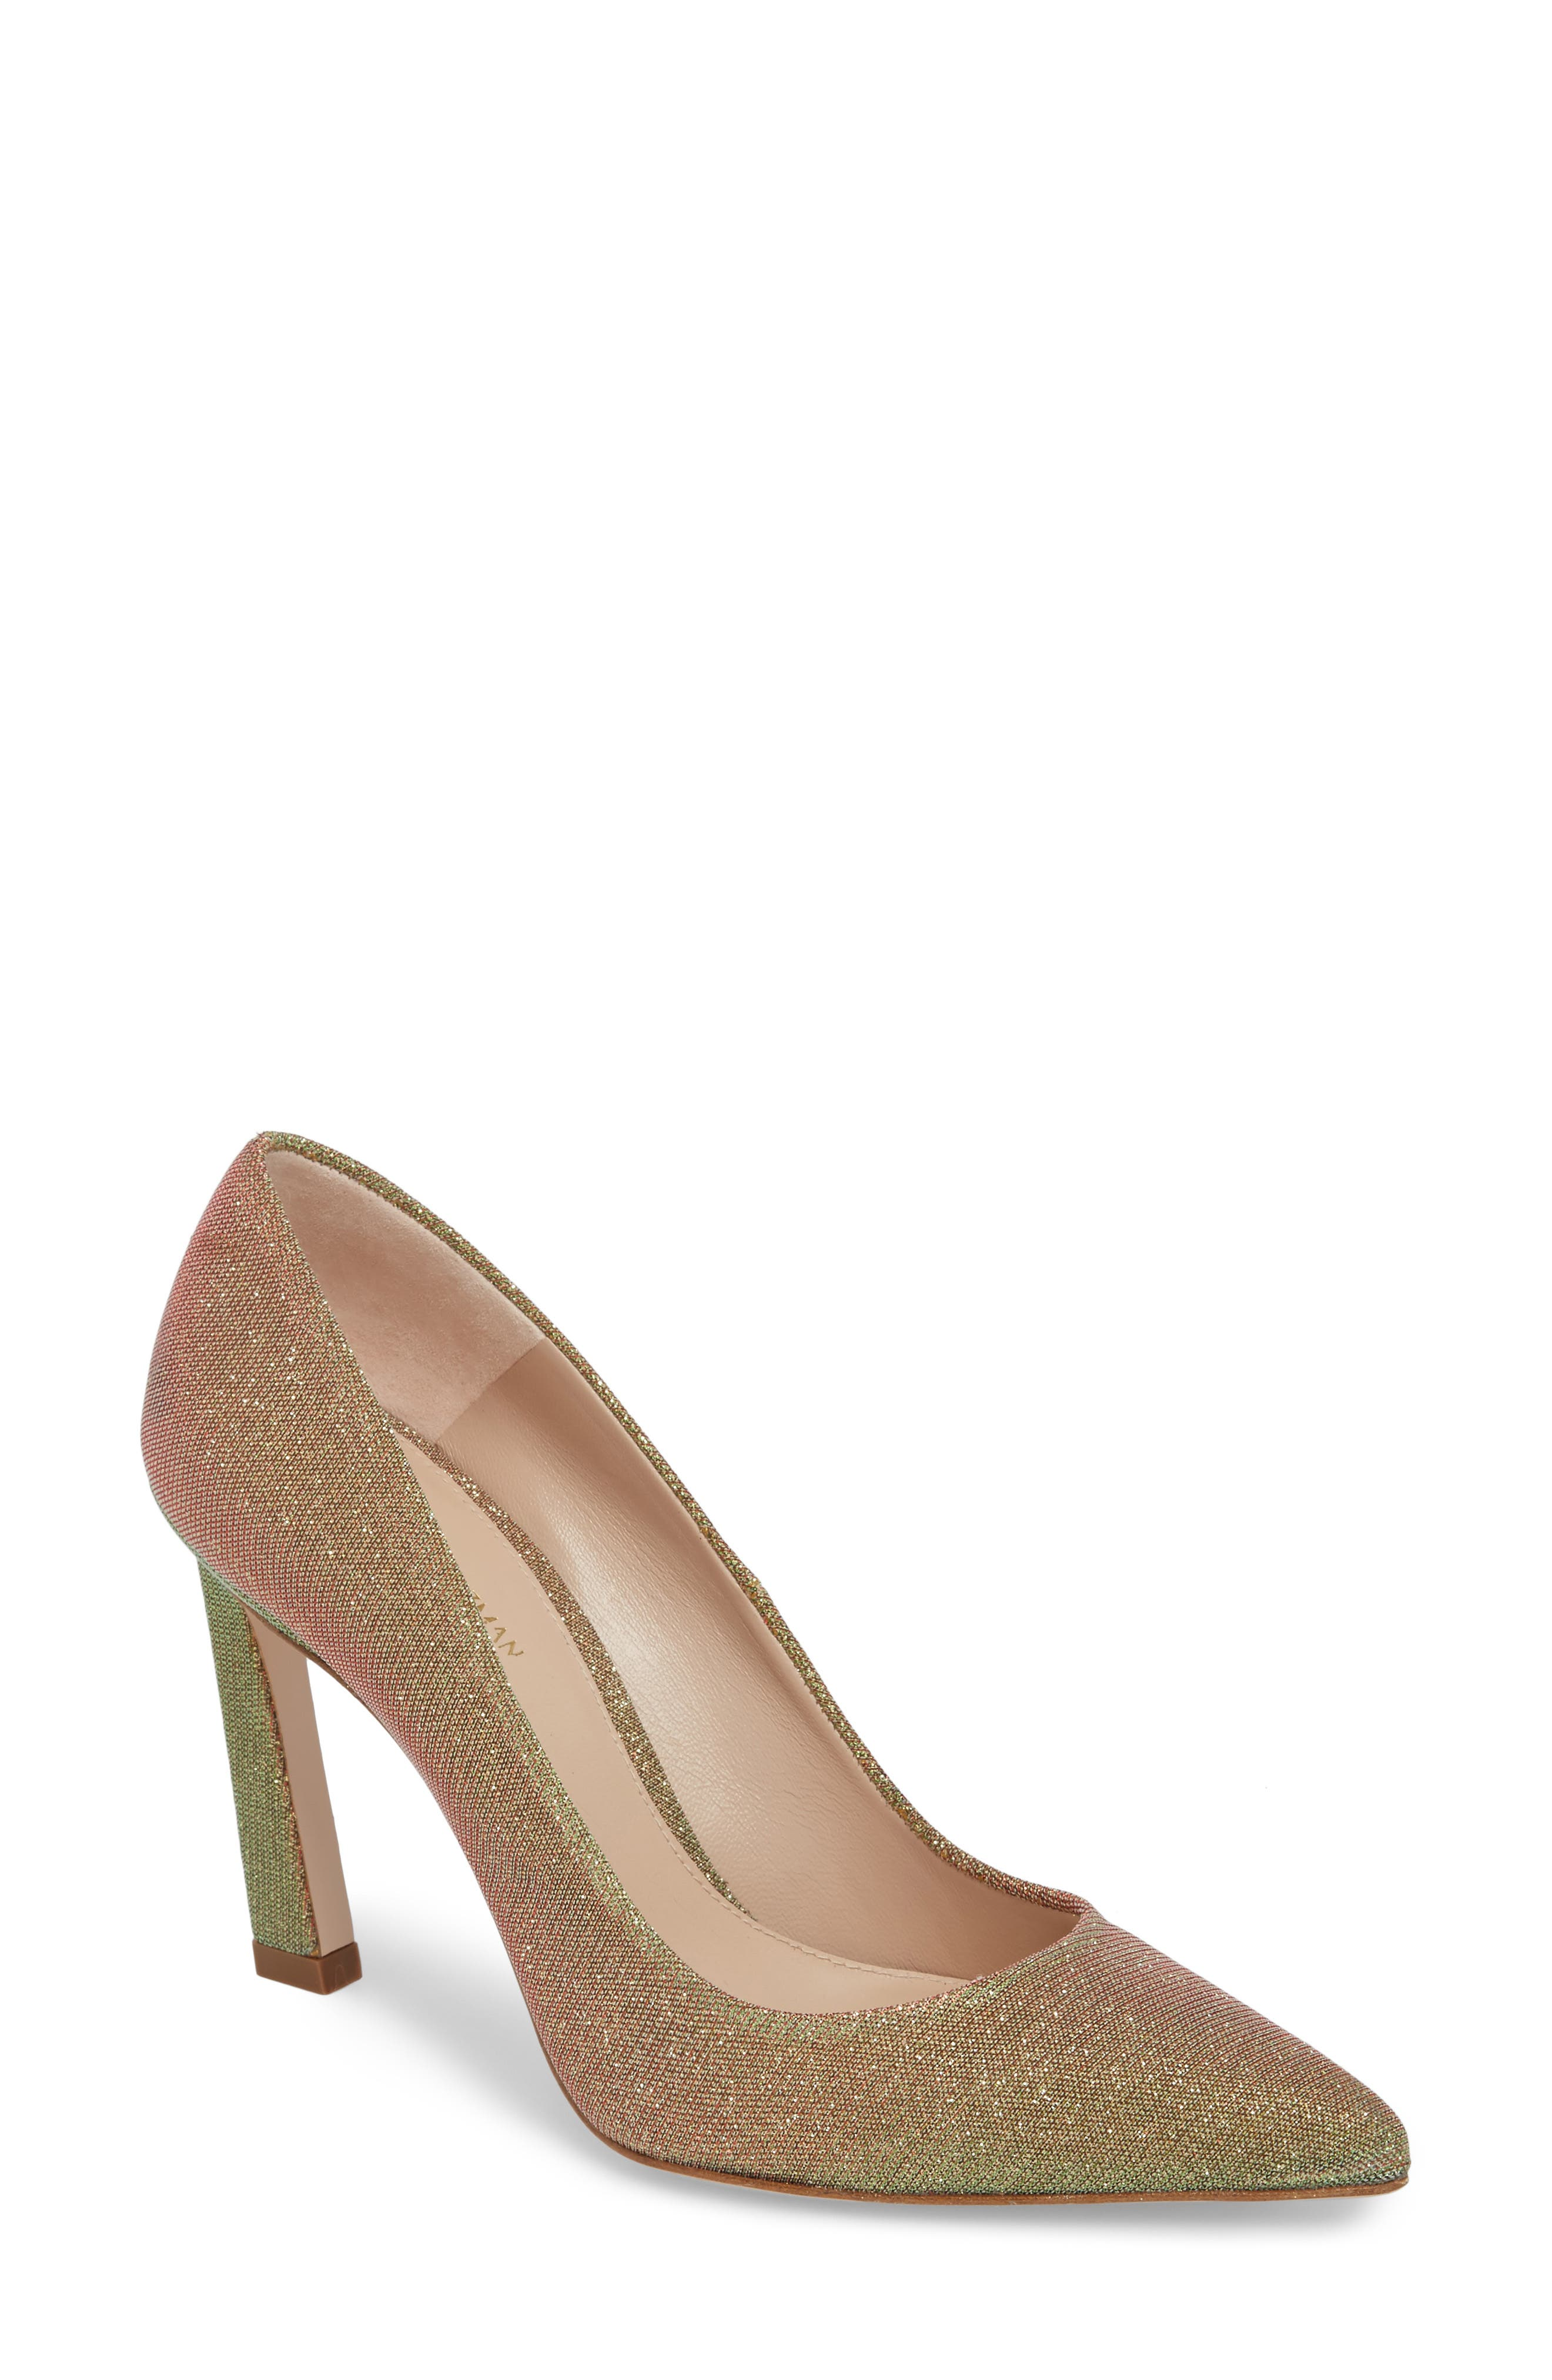 Chicster Pointy Toe Pump,                             Main thumbnail 1, color,                             Gold Multi Nighttime